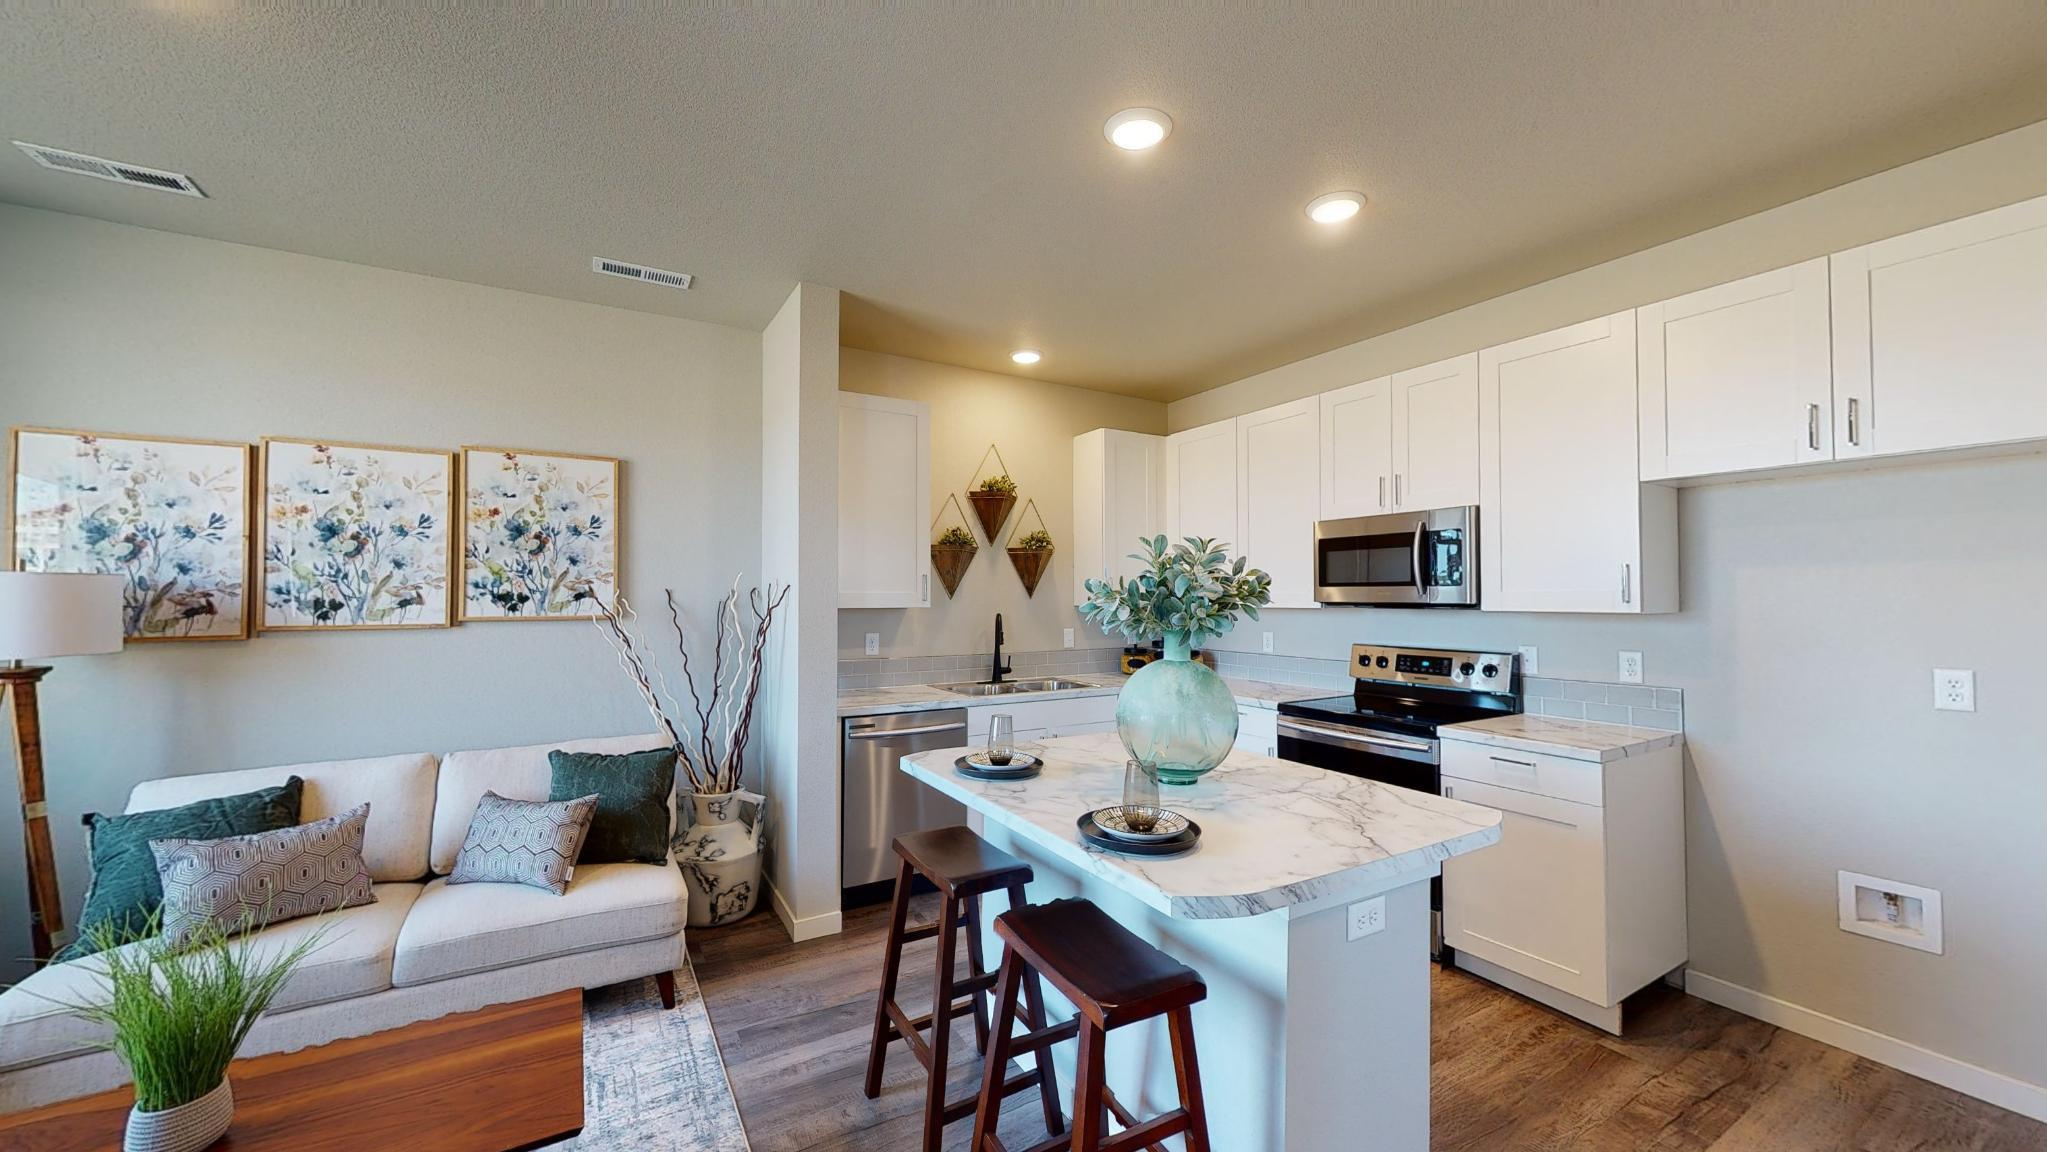 Kitchen featured in the Westcliffe By Baessler Homes in Greeley, CO